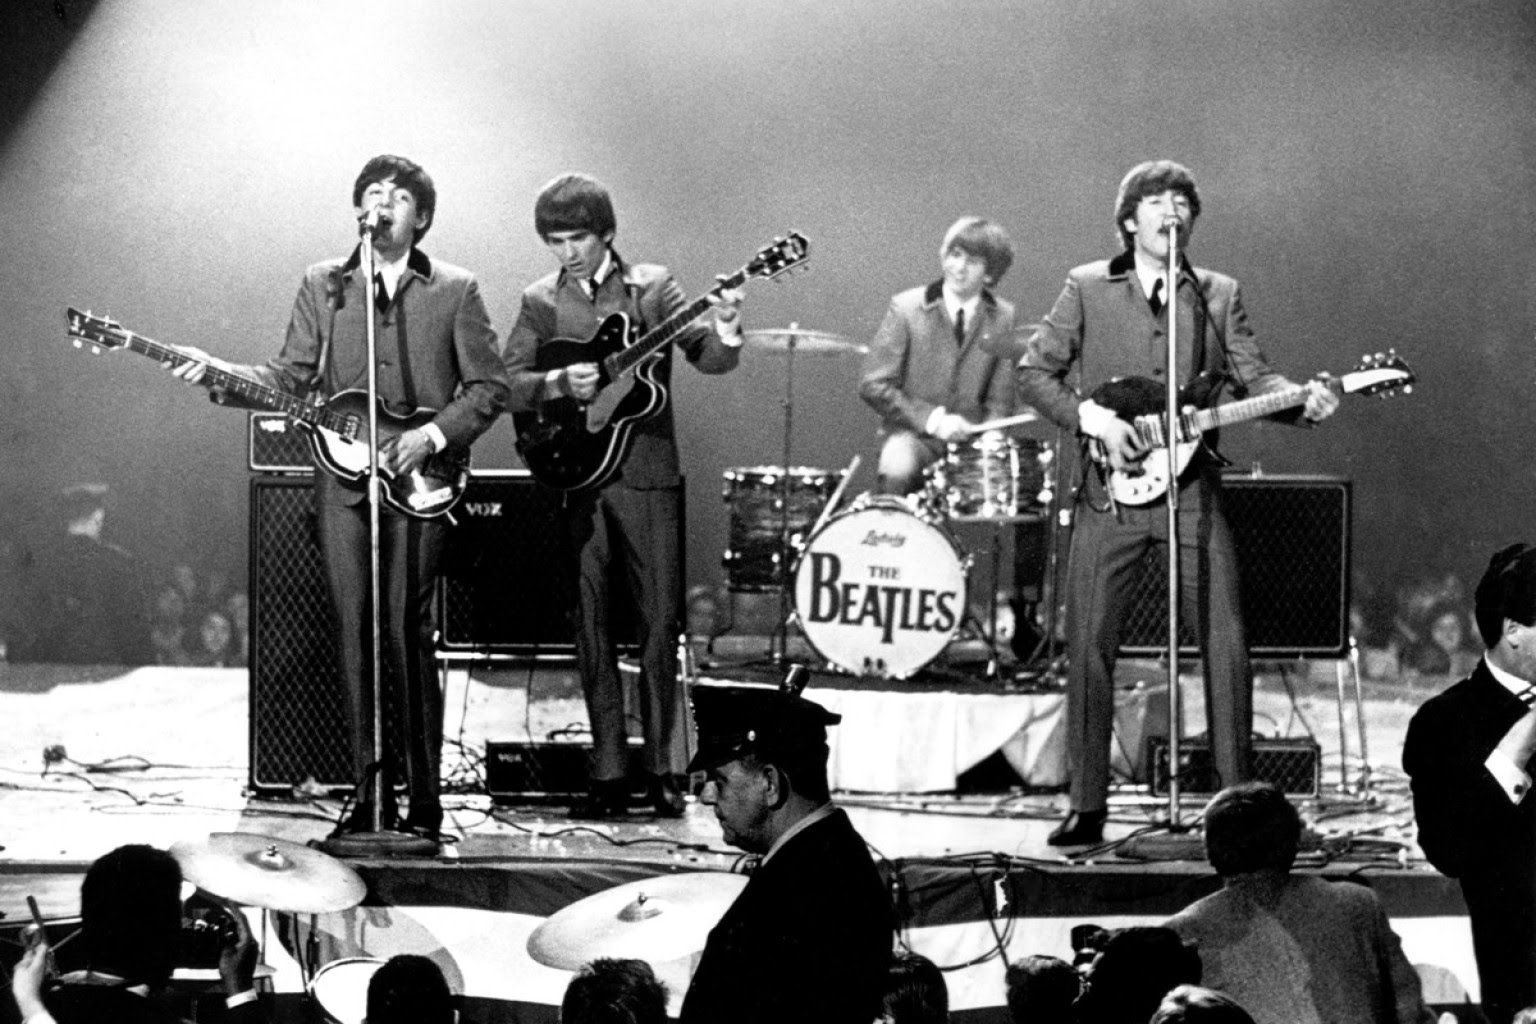 The Beatles Live at Washington Colosseum (Full Performance